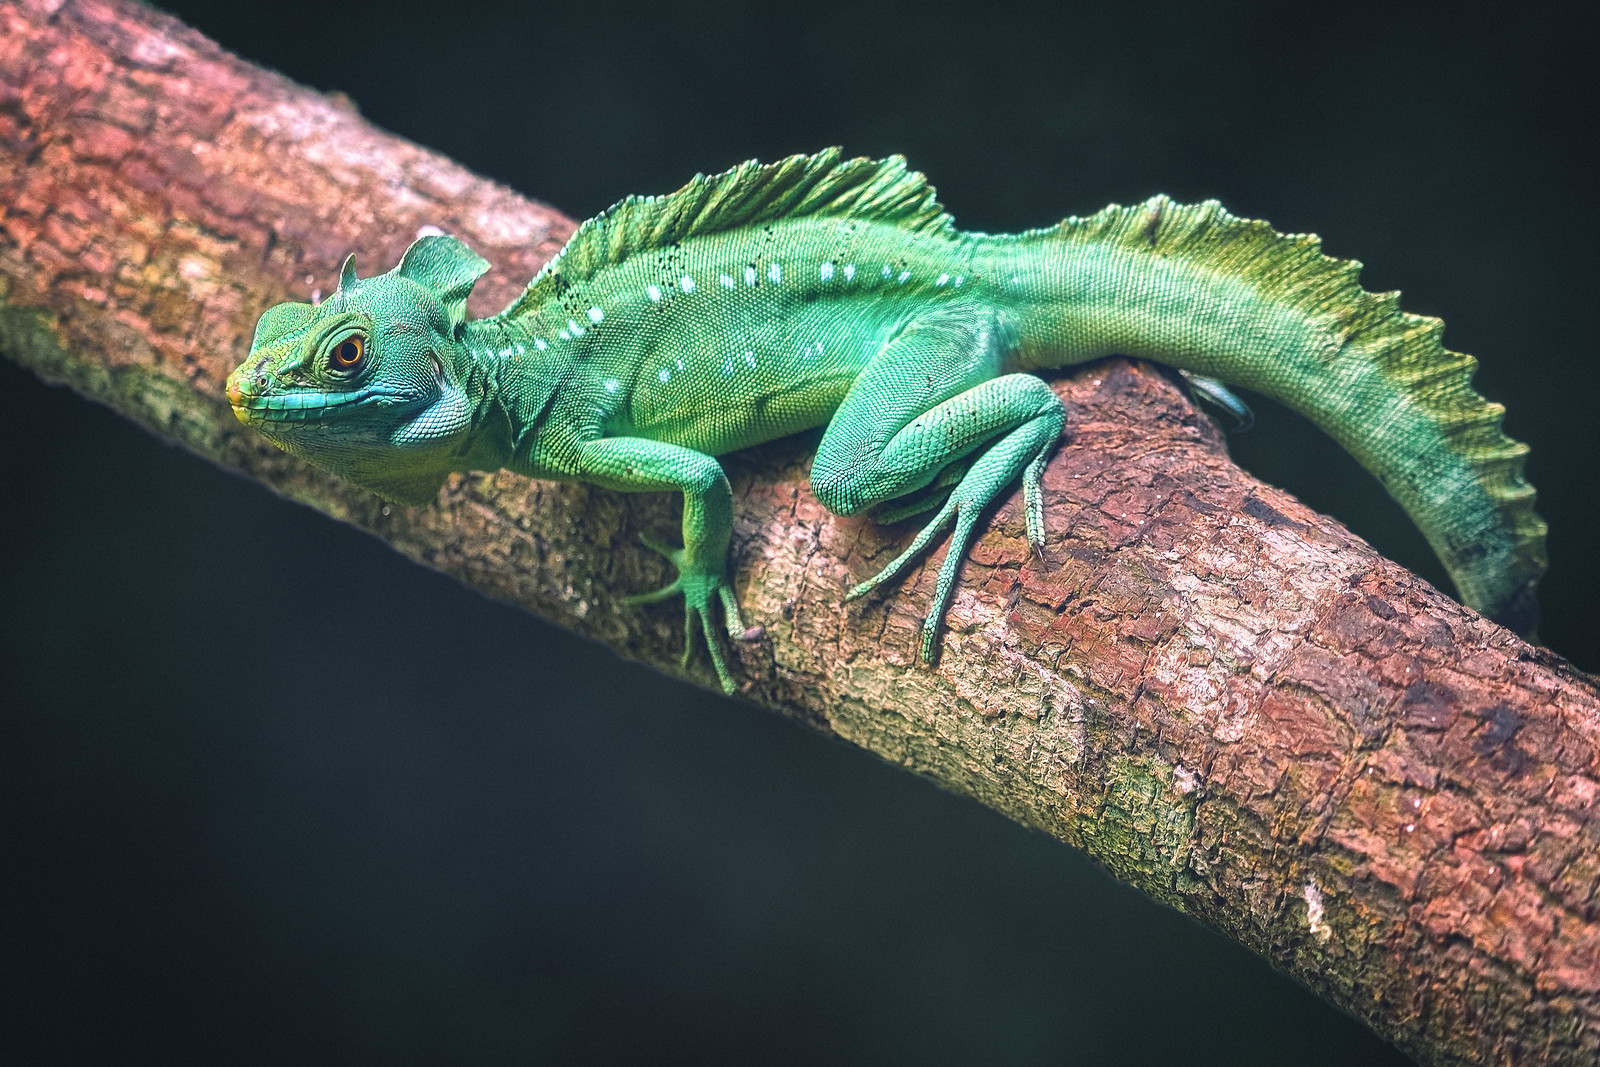 Green Plumed Basilisk Lizard